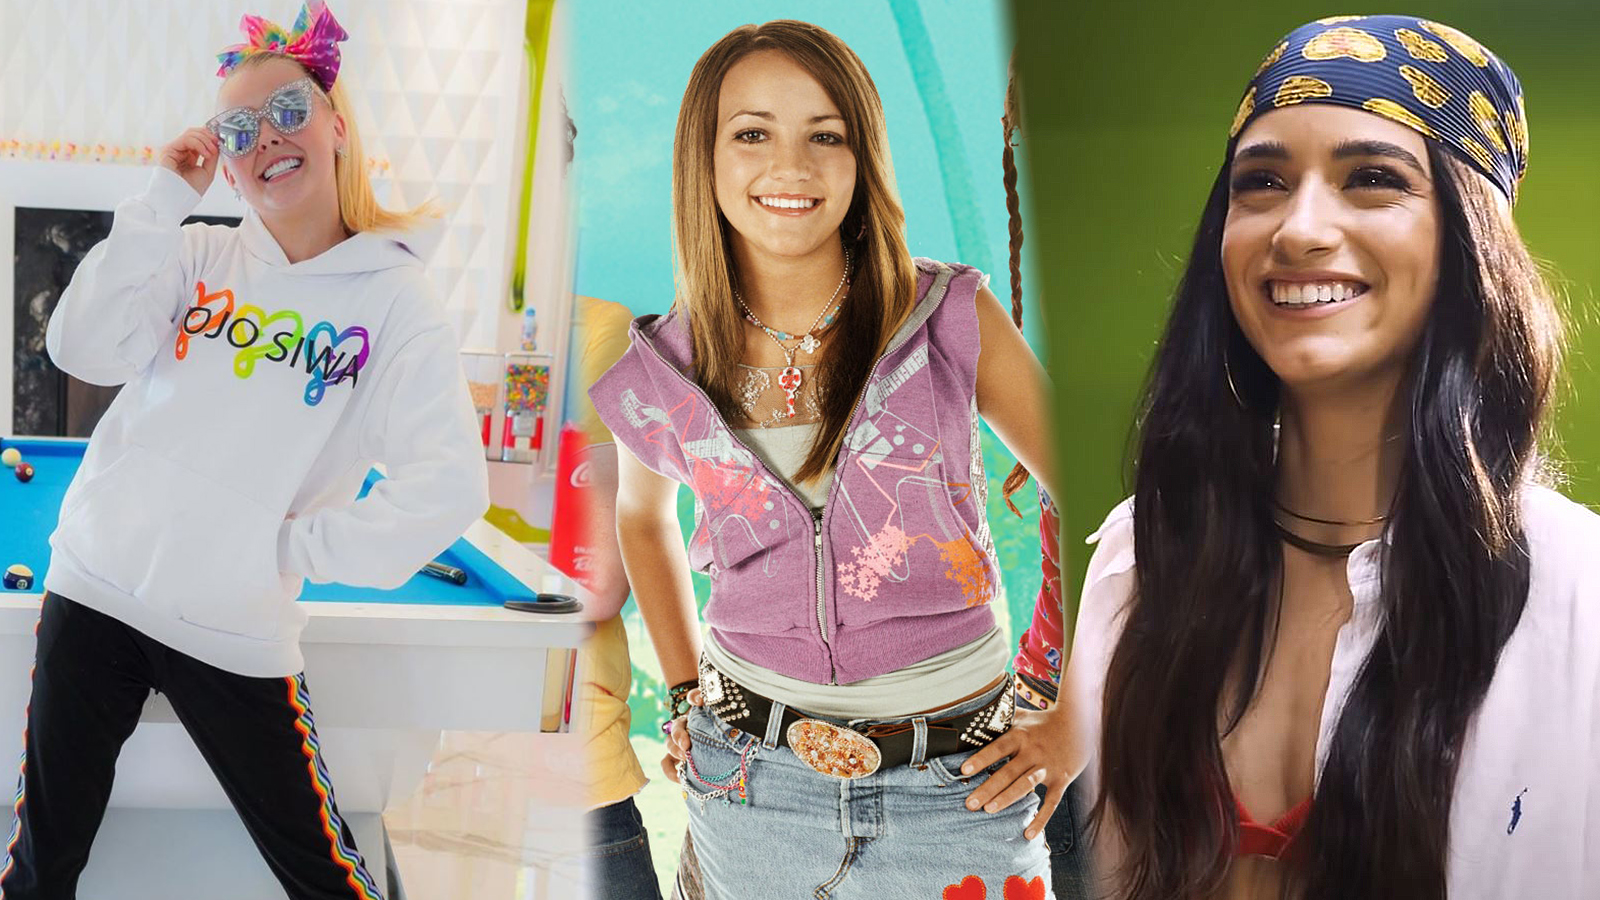 JoJo Siwa and Dixie D'Amelio surround a photo of Jamie Lynn Spears as she appears in Zoey 101.